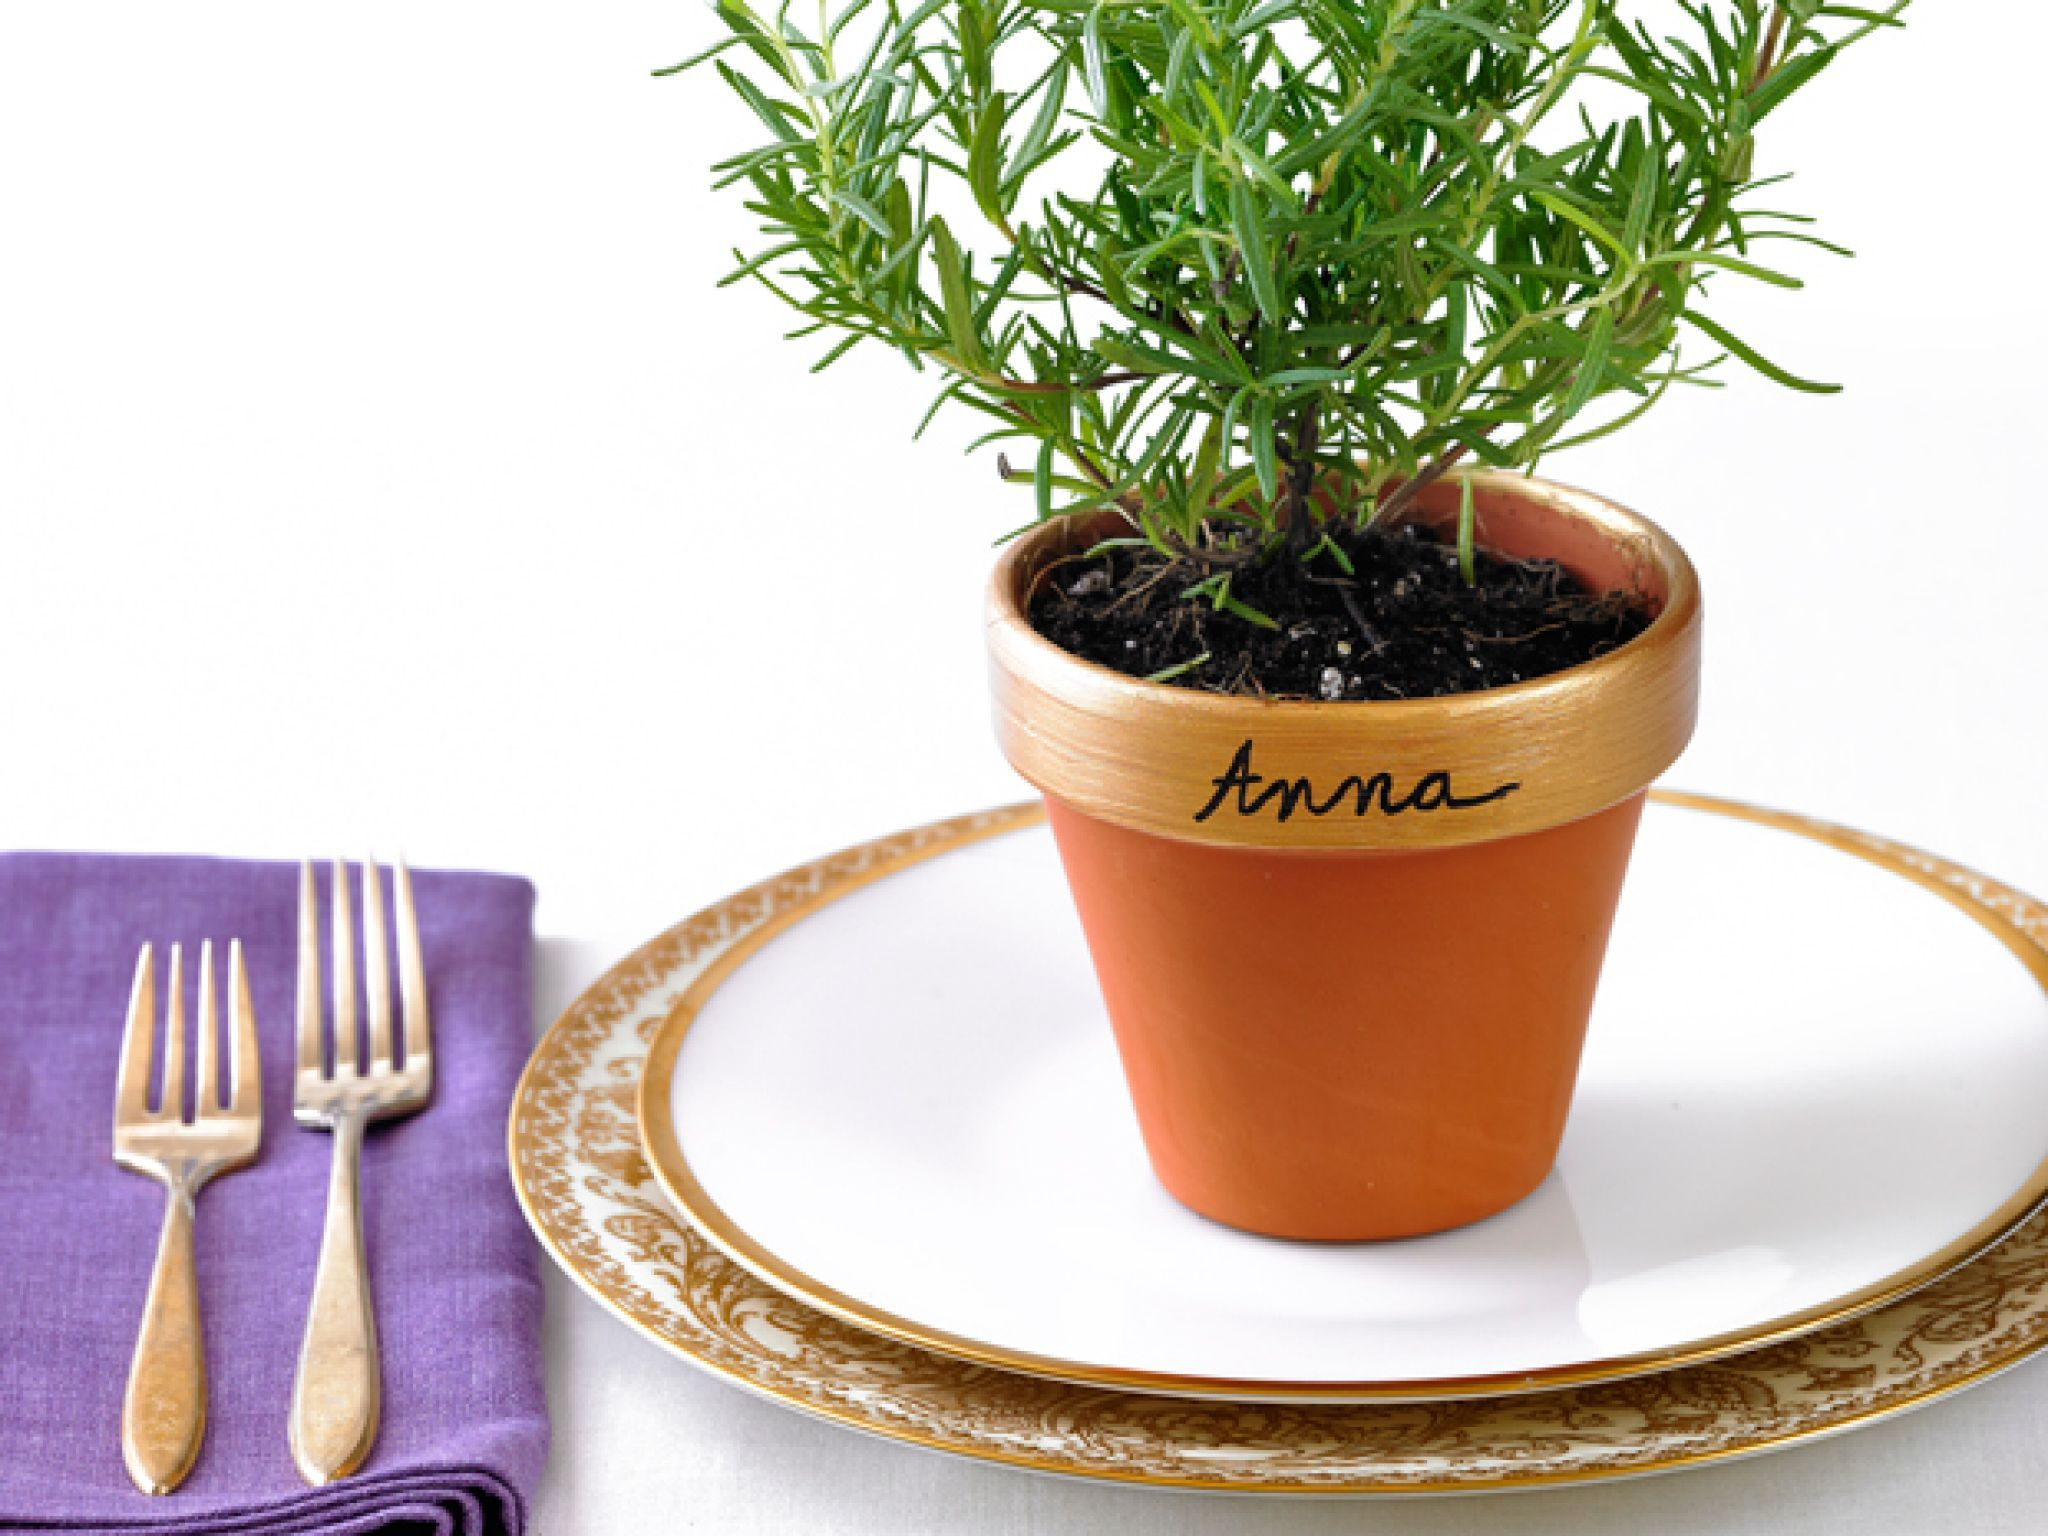 Small Herb Pots Part - 35: Pot Your Own Placeholders : Make Personalized Pots Of Herbs For Place  Settings: Buy Small